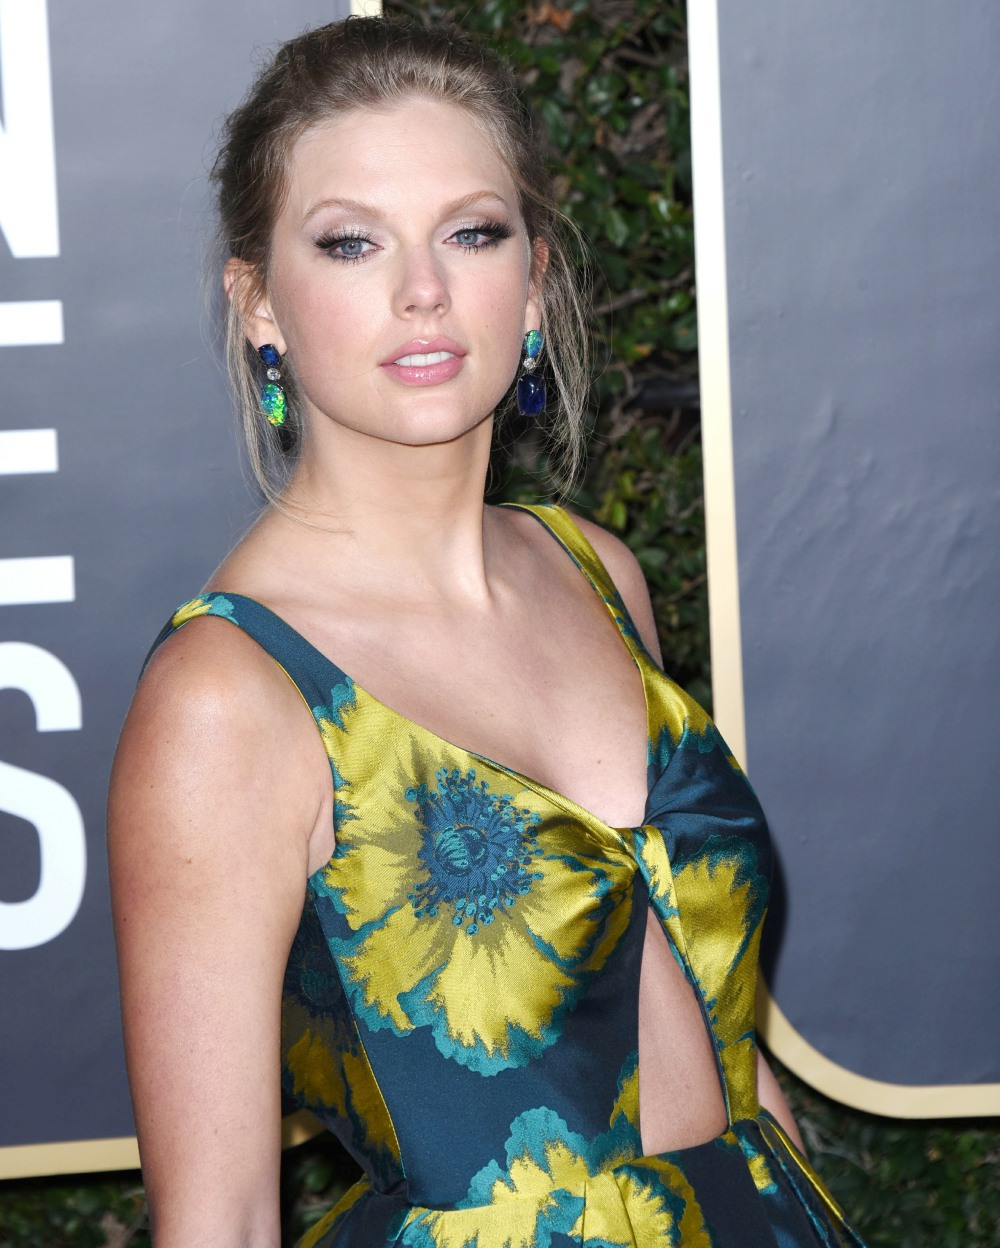 Taylor Swift attends the 77th Annual Golden Globe Awards at The Beverly Hilton Hotel on January 05, 2020 in Beverly Hills, California © Jill Johnson/jpistudios.com